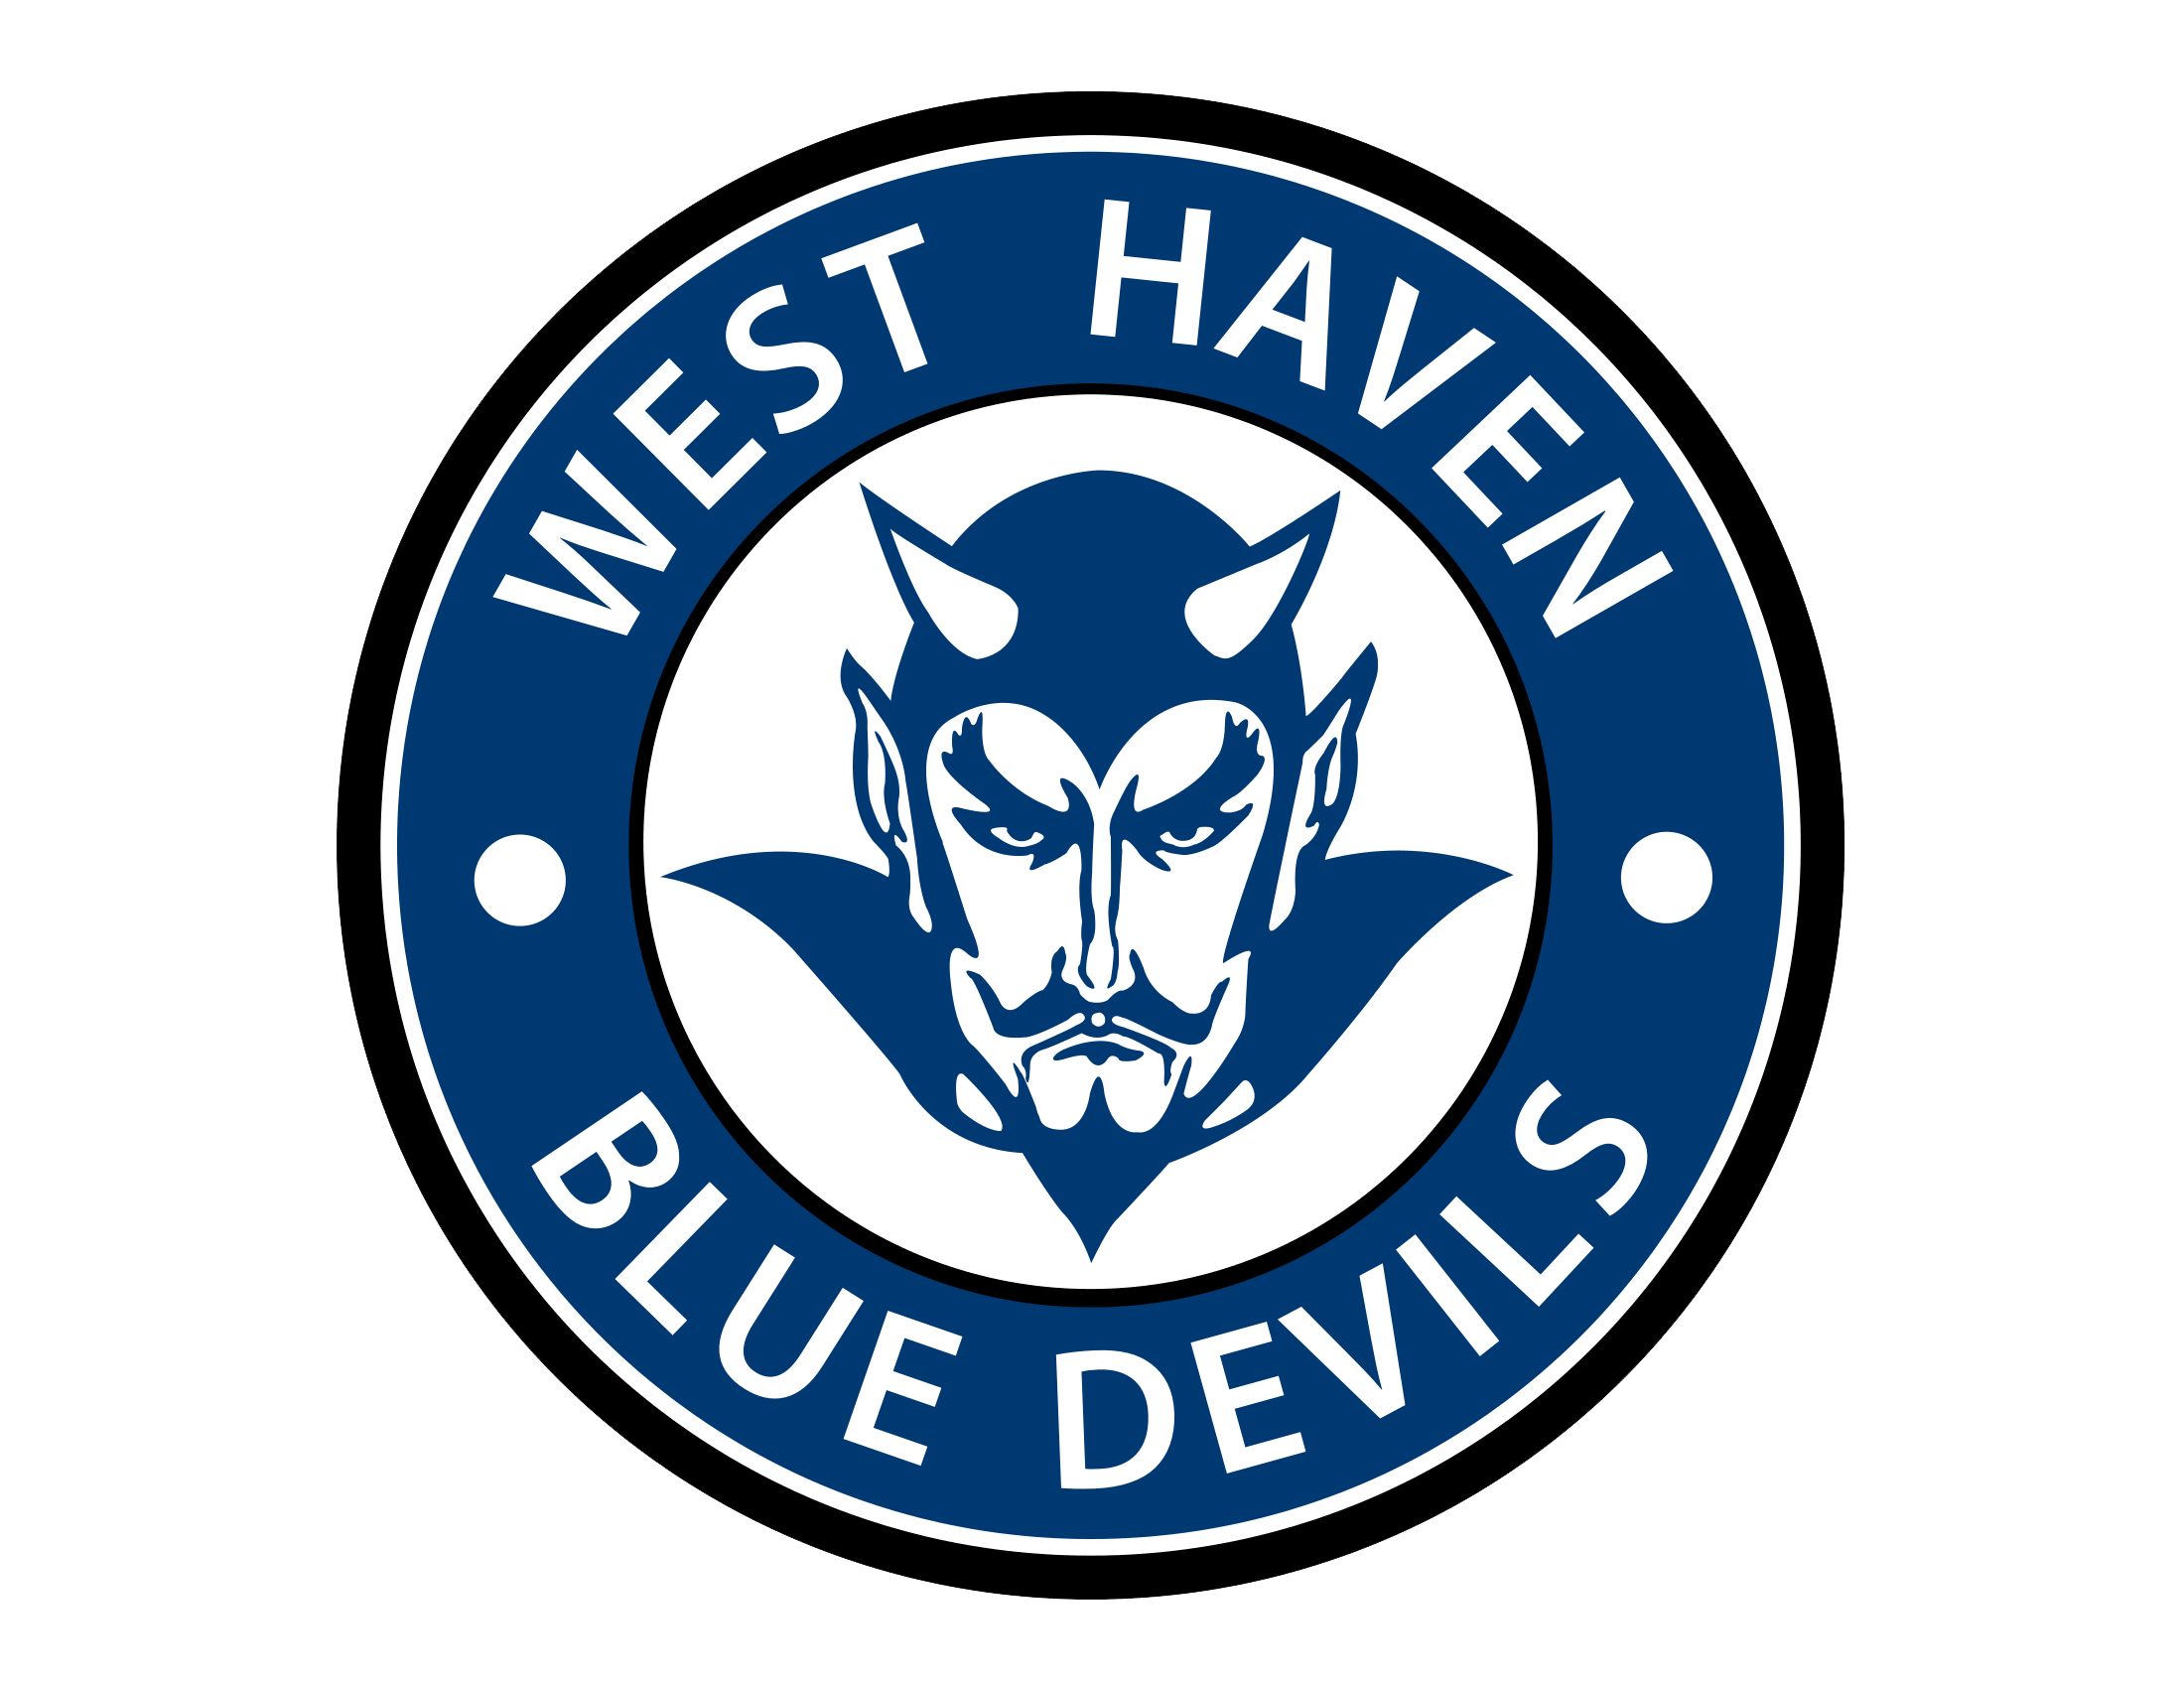 West Haven High School